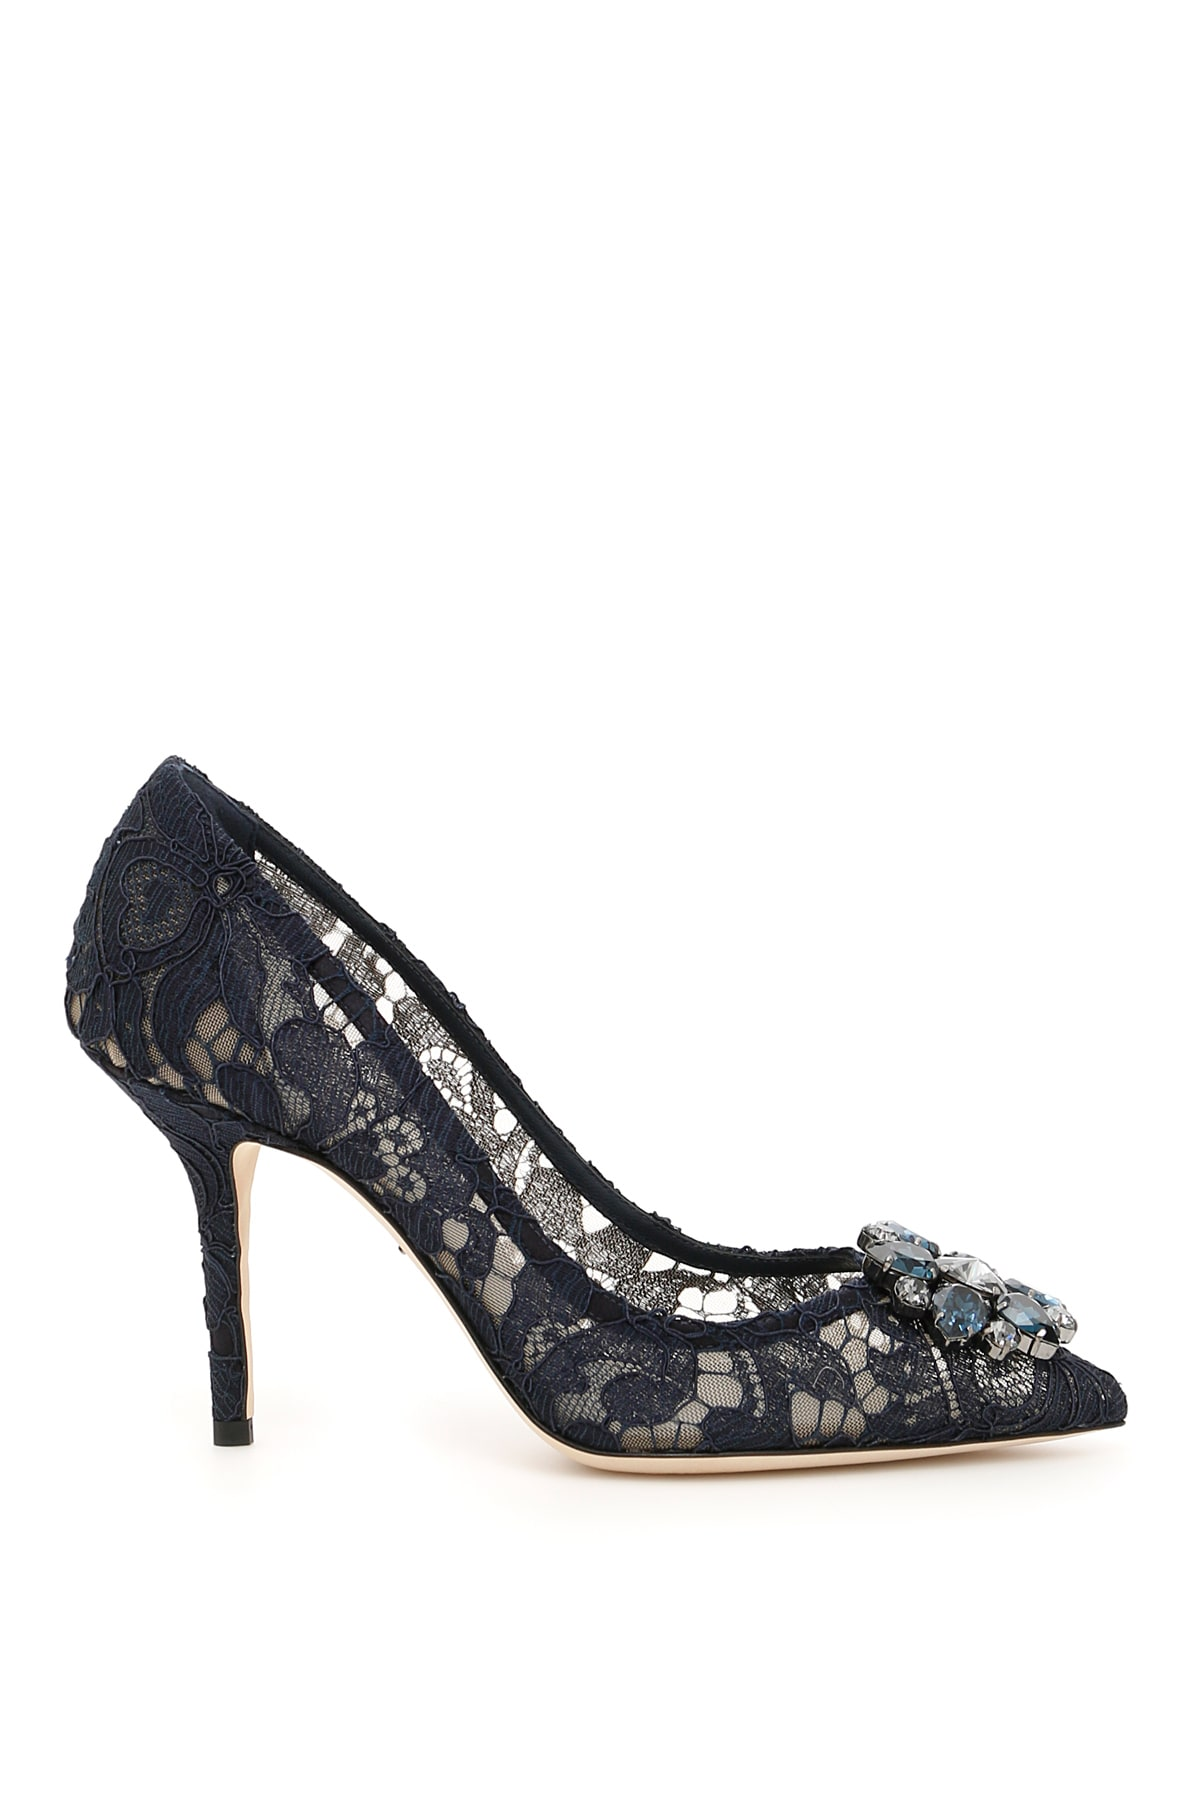 Dolce & Gabbana LACE BELLUCCI PUMPS